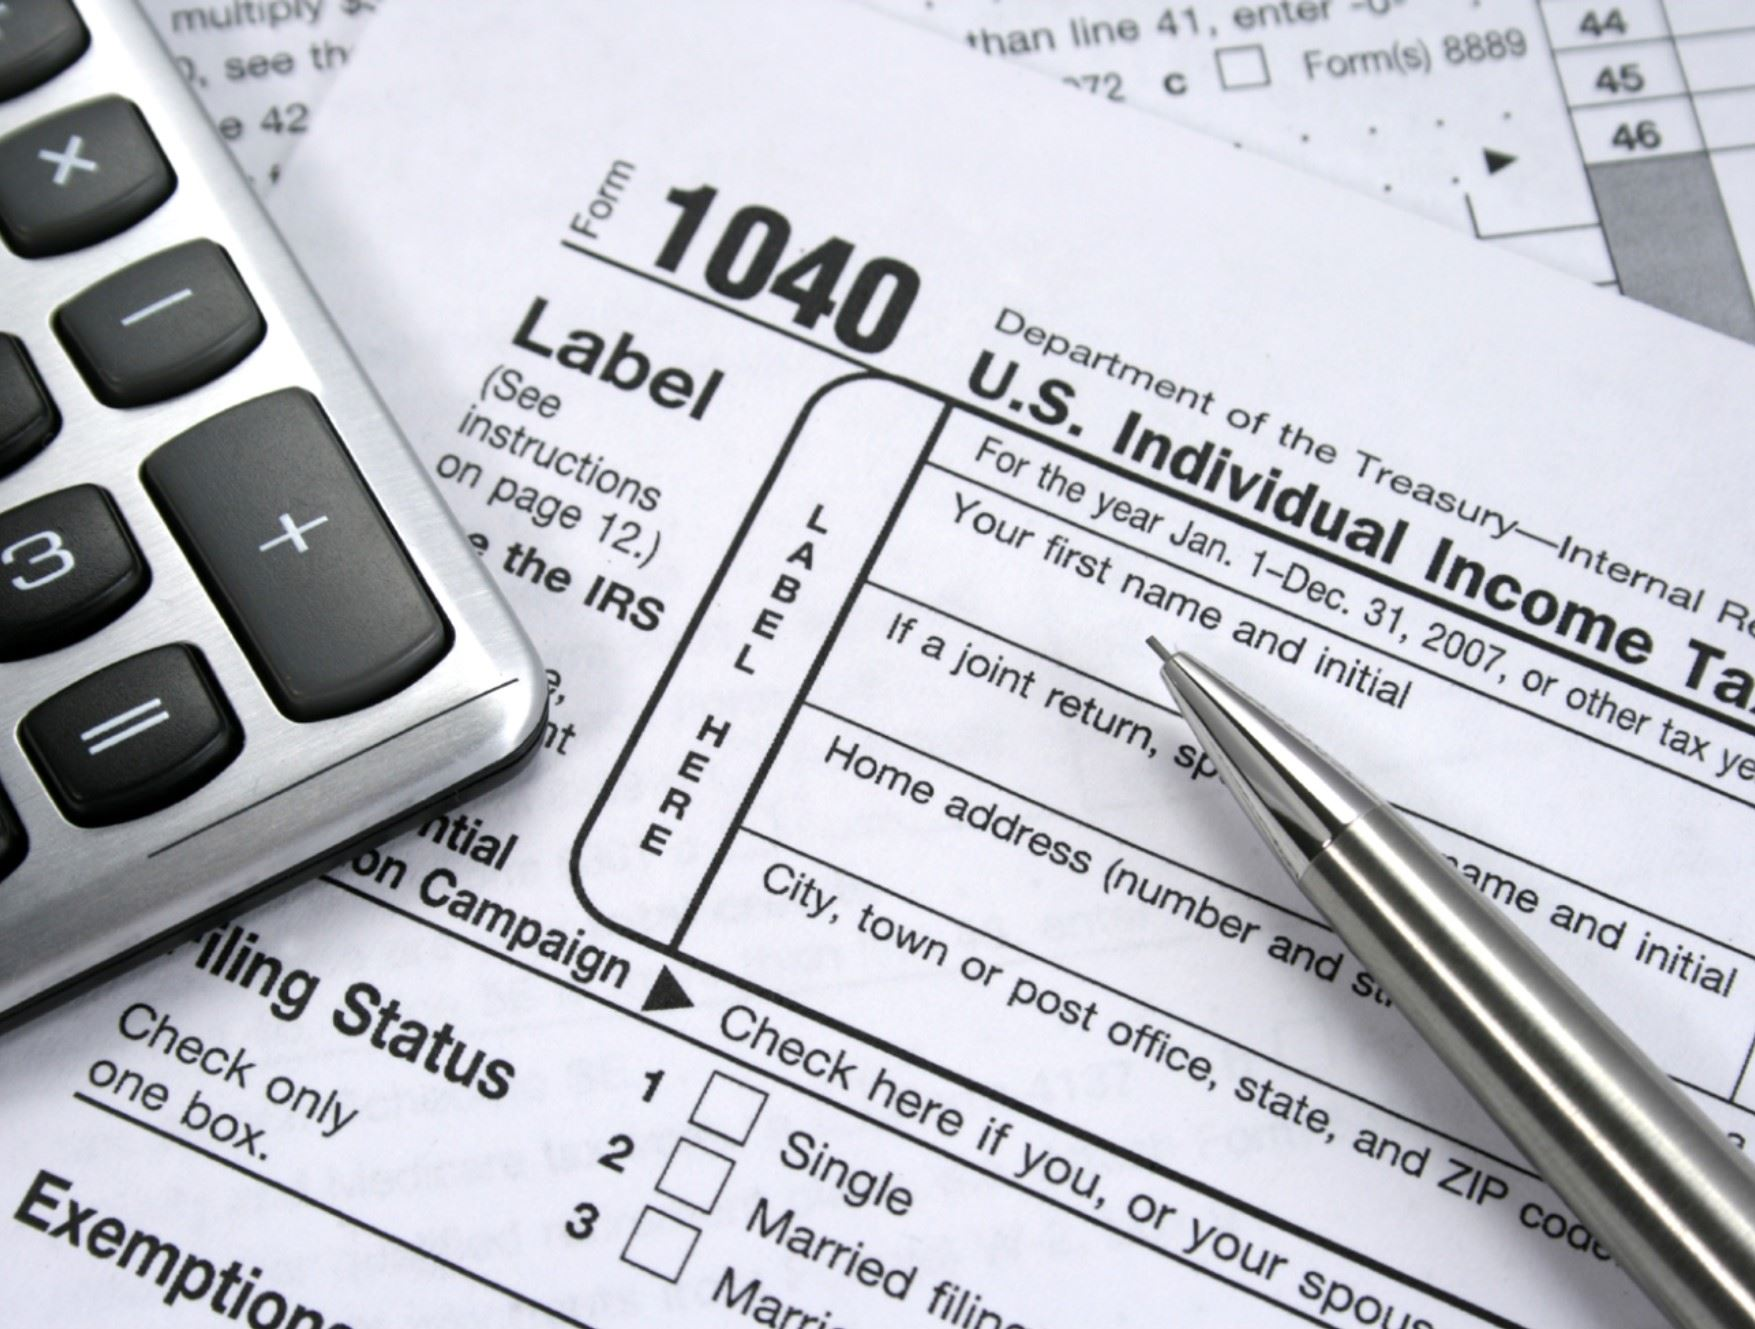 Image of income tax forms, calculator and pen